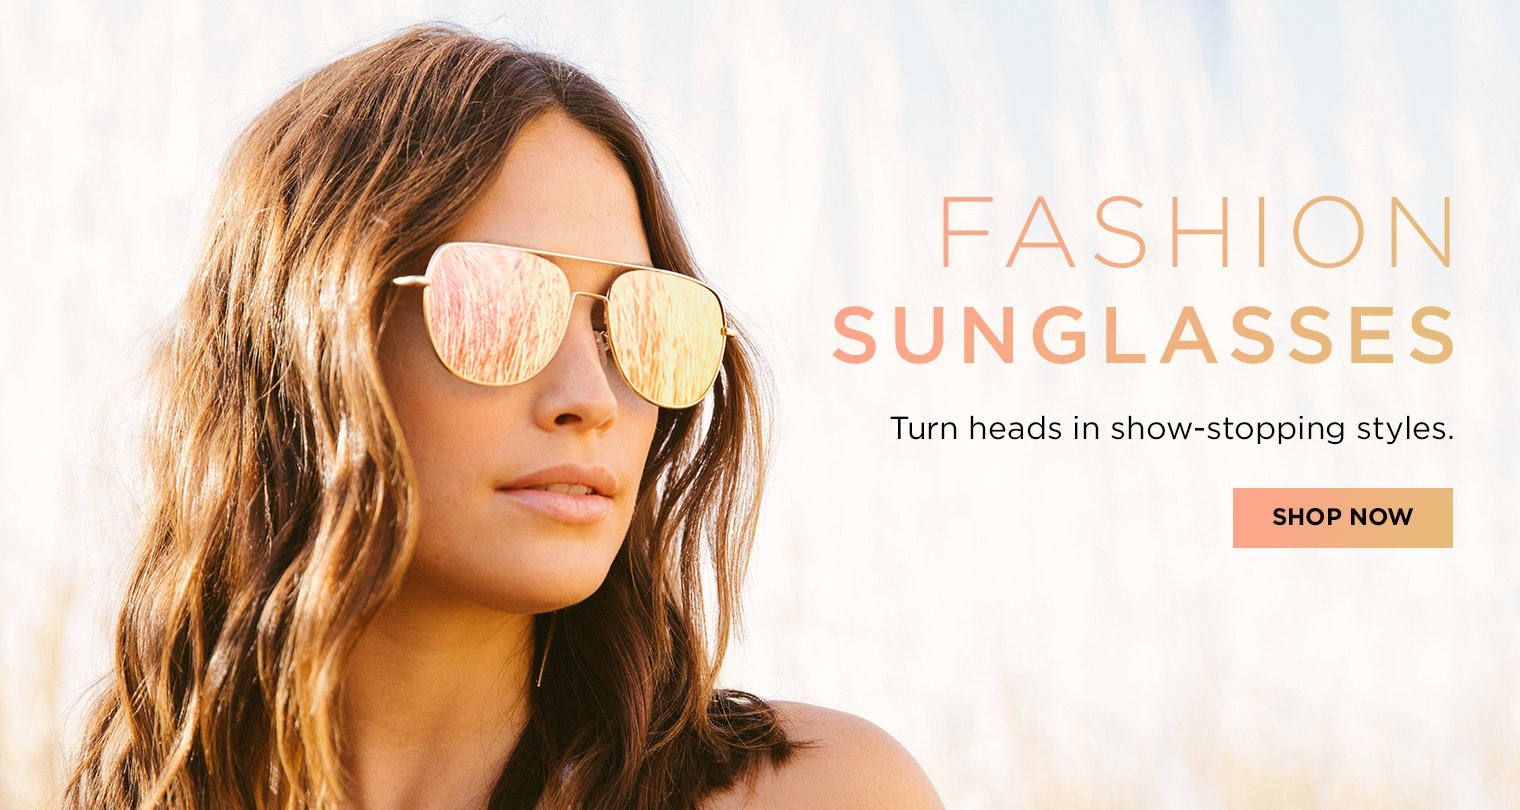 Fashion Sunglasses. Turn heads in show-stopping styles. Shop now.